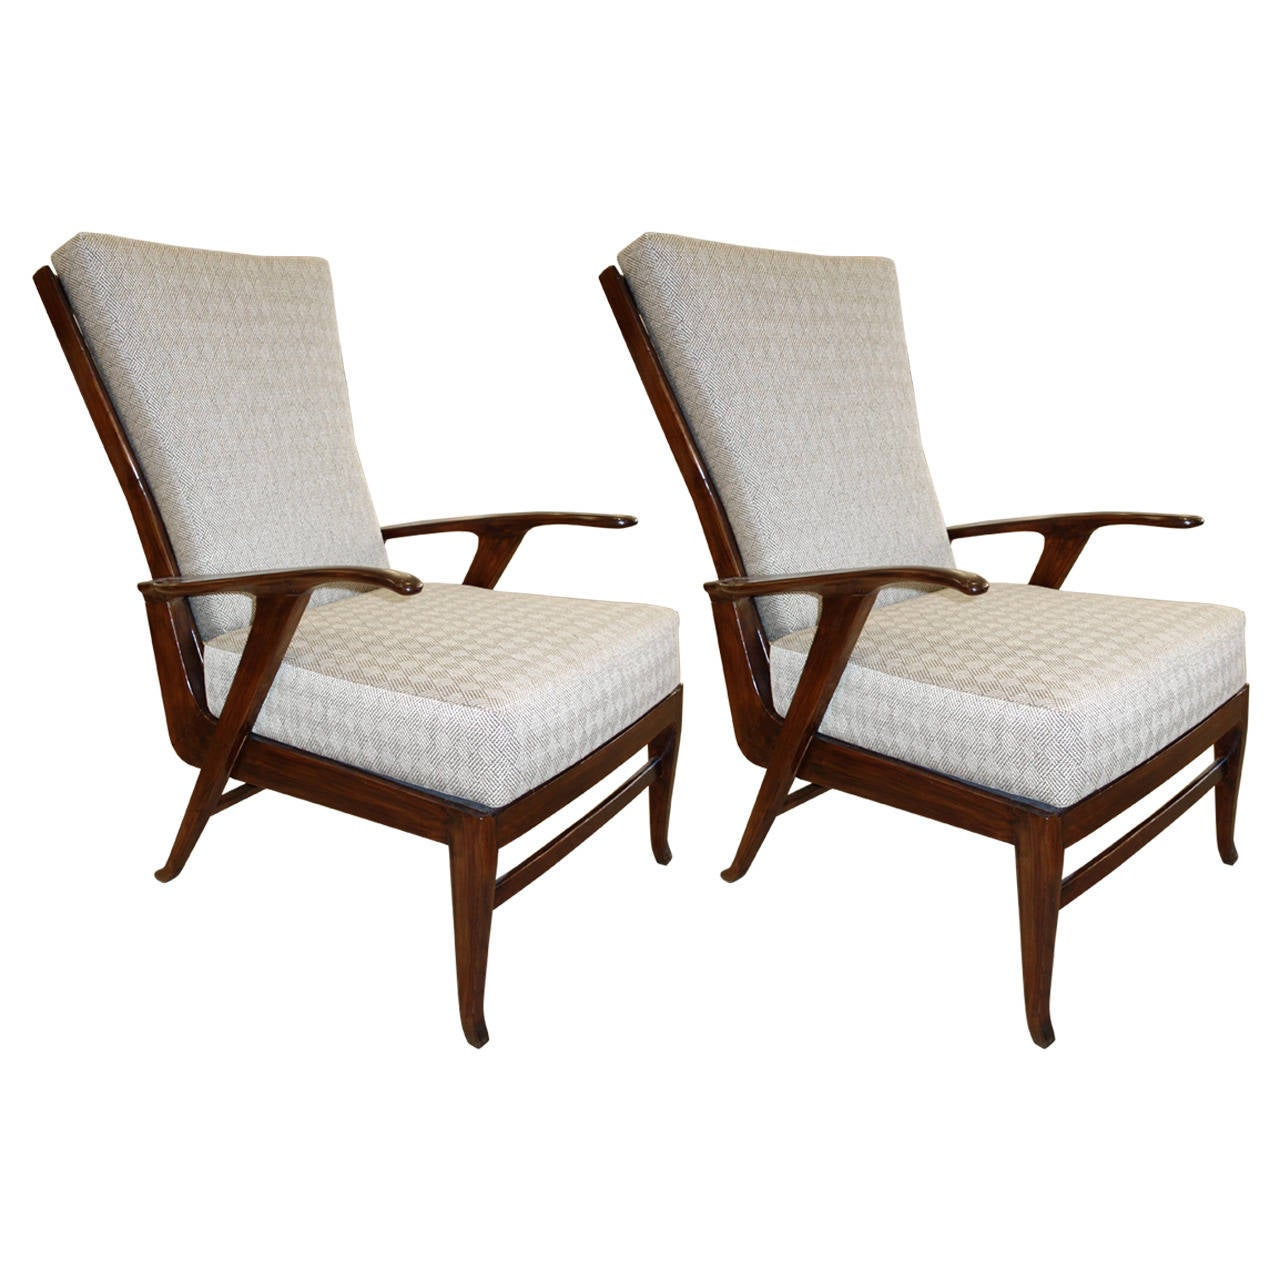 Pair of Italian Mid-Century Reclining Lounge Chairs 1